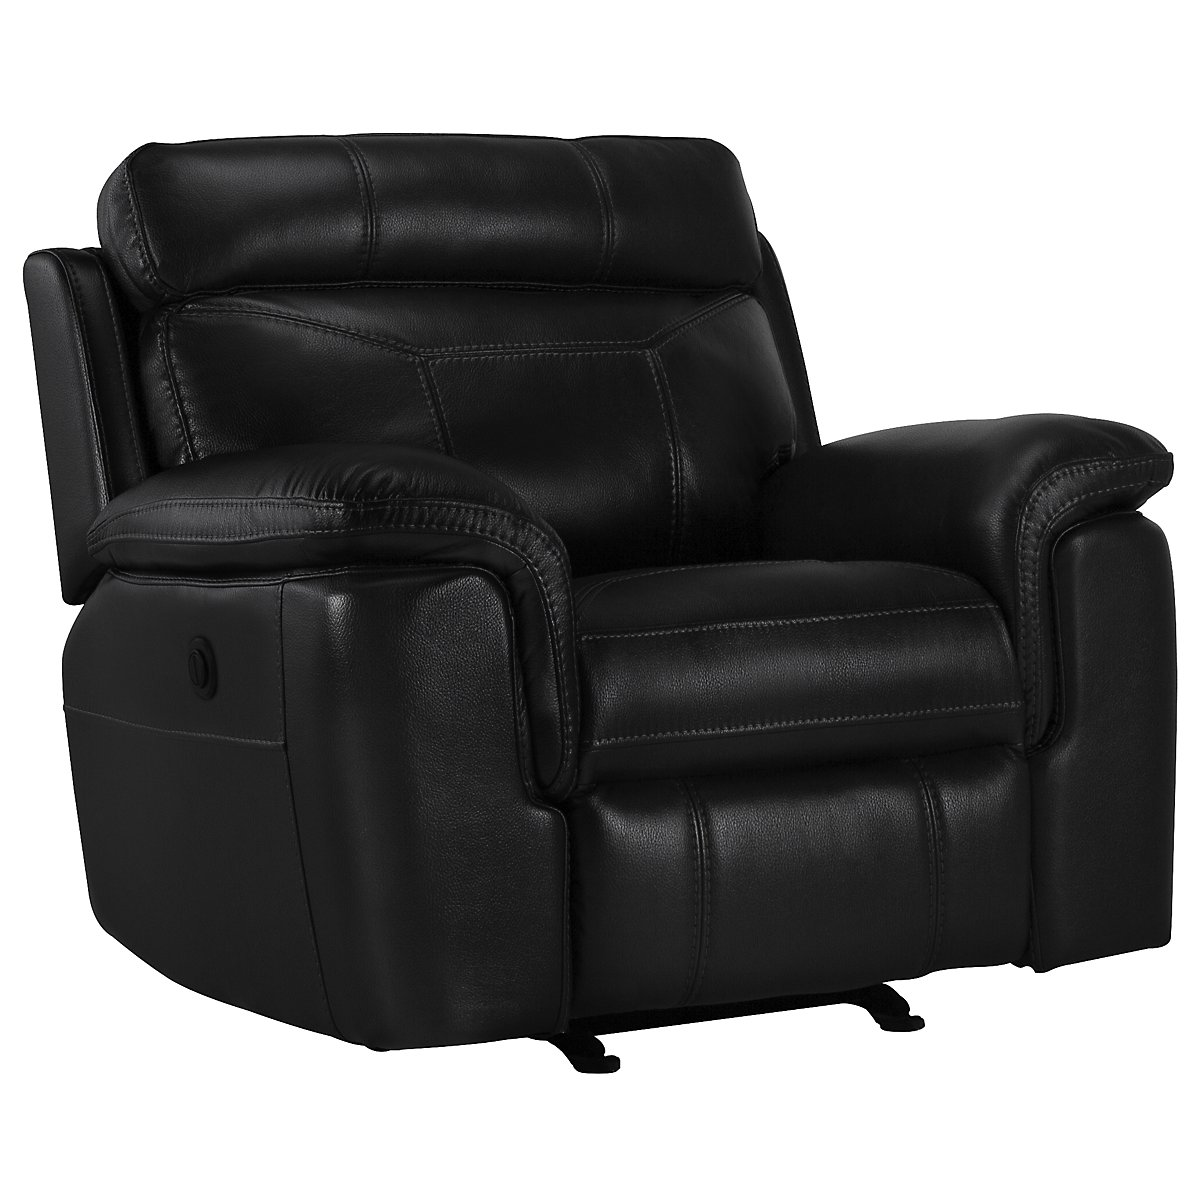 Gamma Black Microfiber Power Recliner